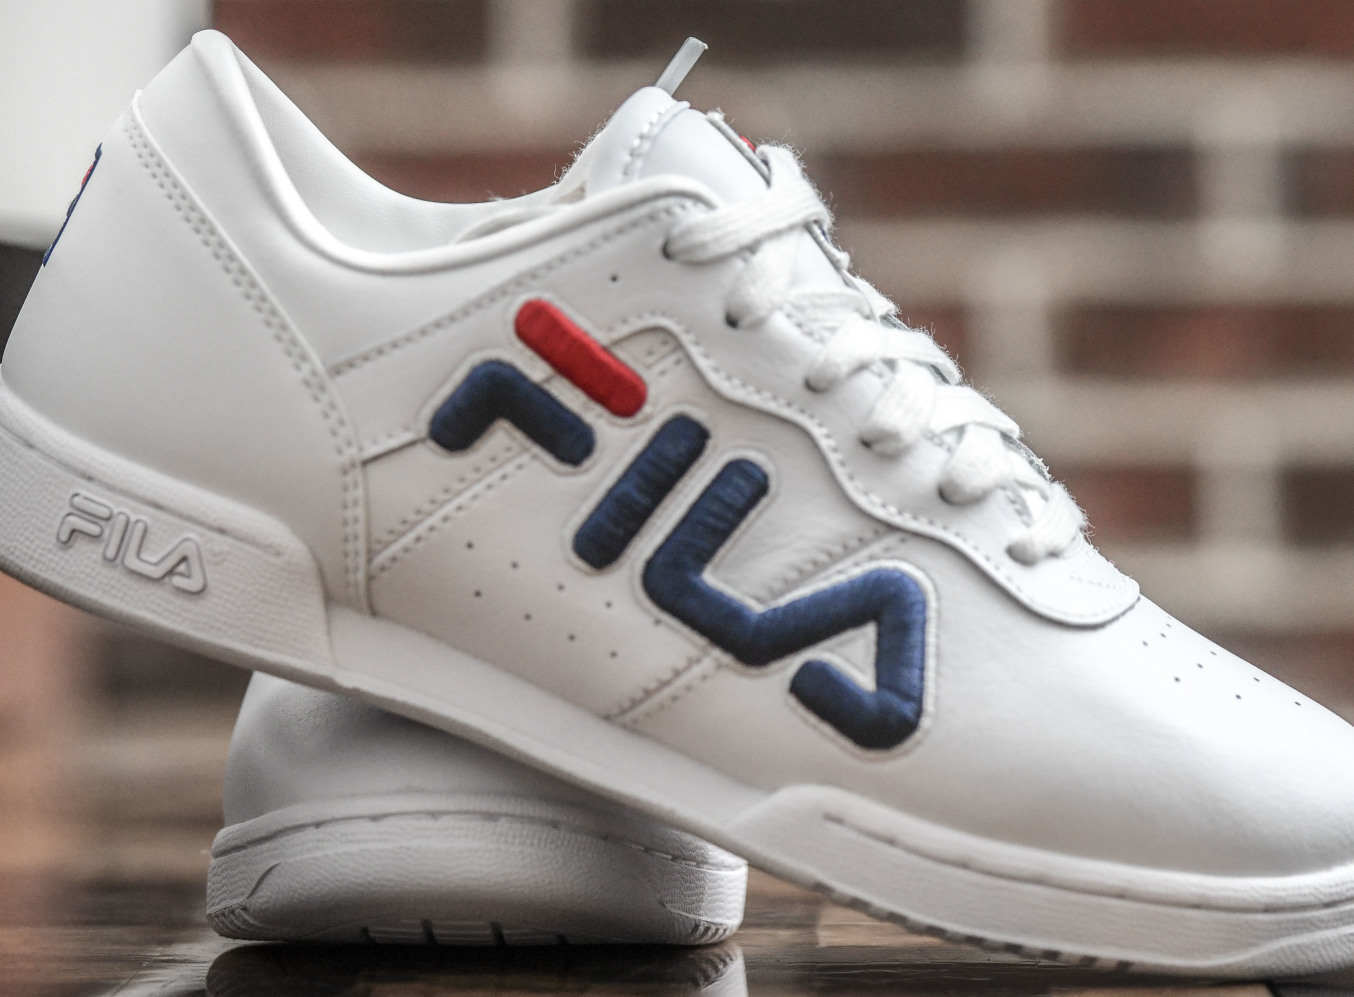 fila baltimores other sneaker company is banking on a